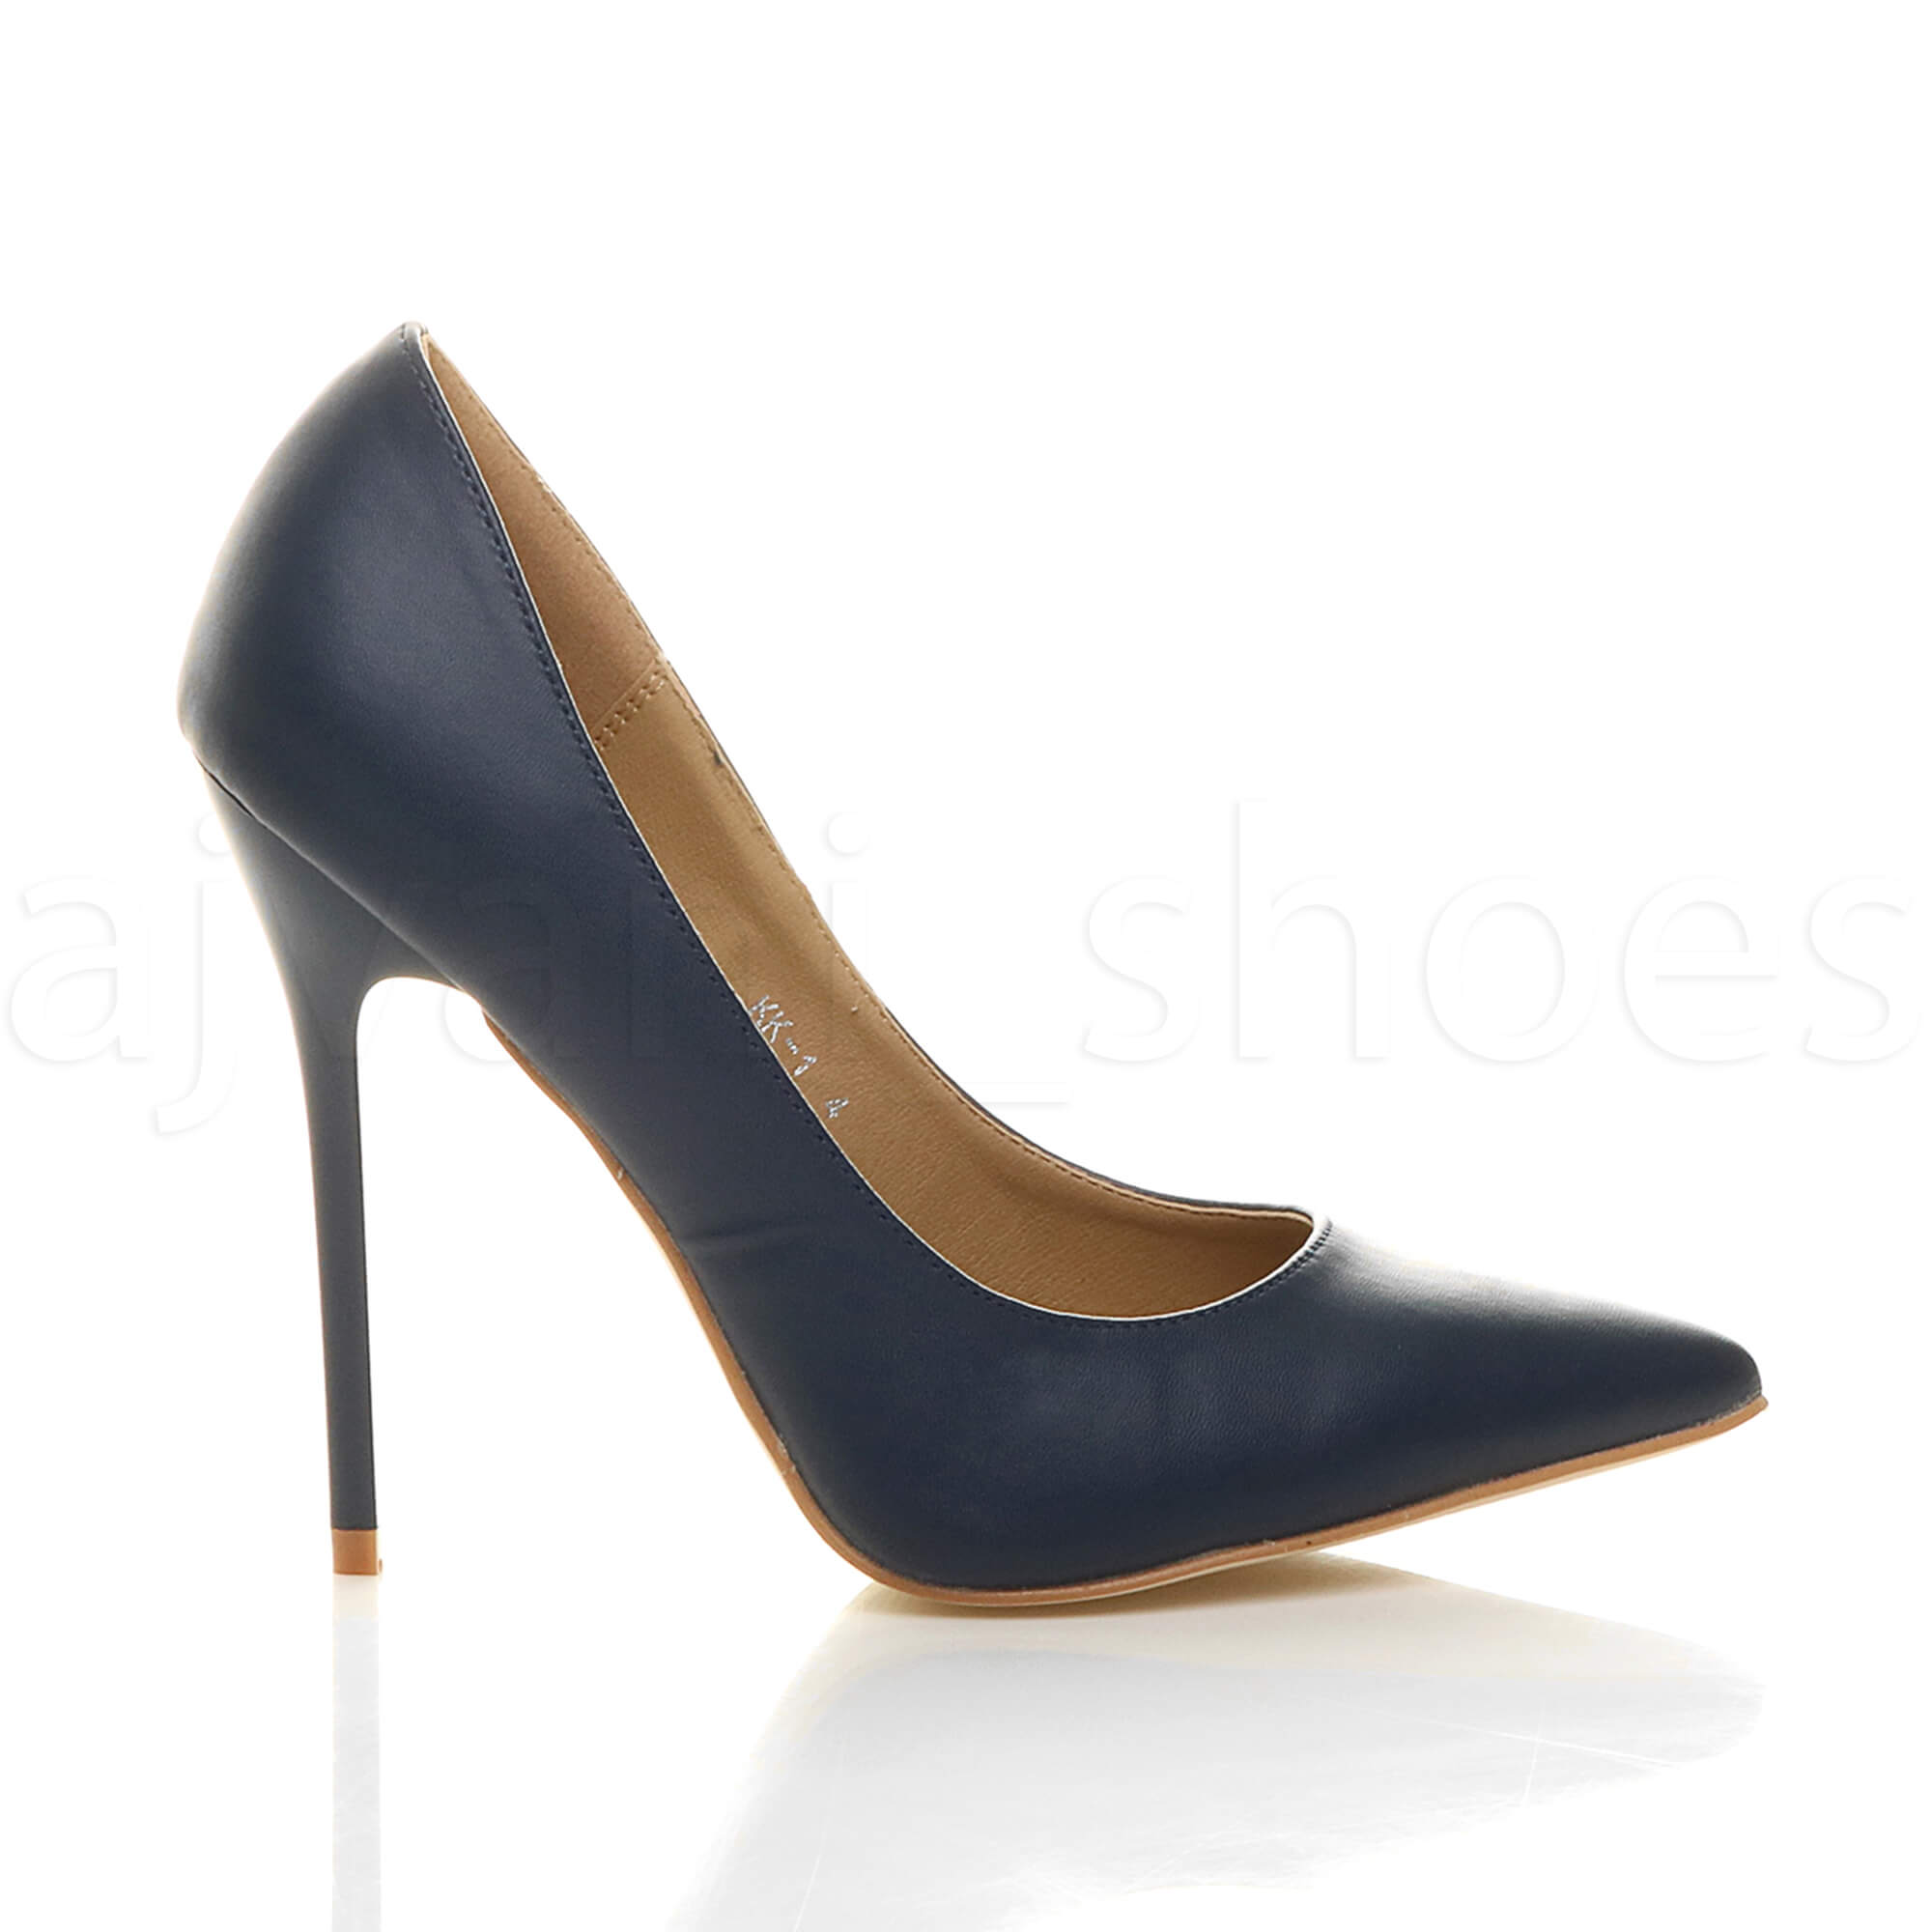 WOMENS-LADIES-HIGH-HEEL-POINTED-CONTRAST-COURT-SMART-PARTY-WORK-SHOES-PUMPS-SIZE thumbnail 89